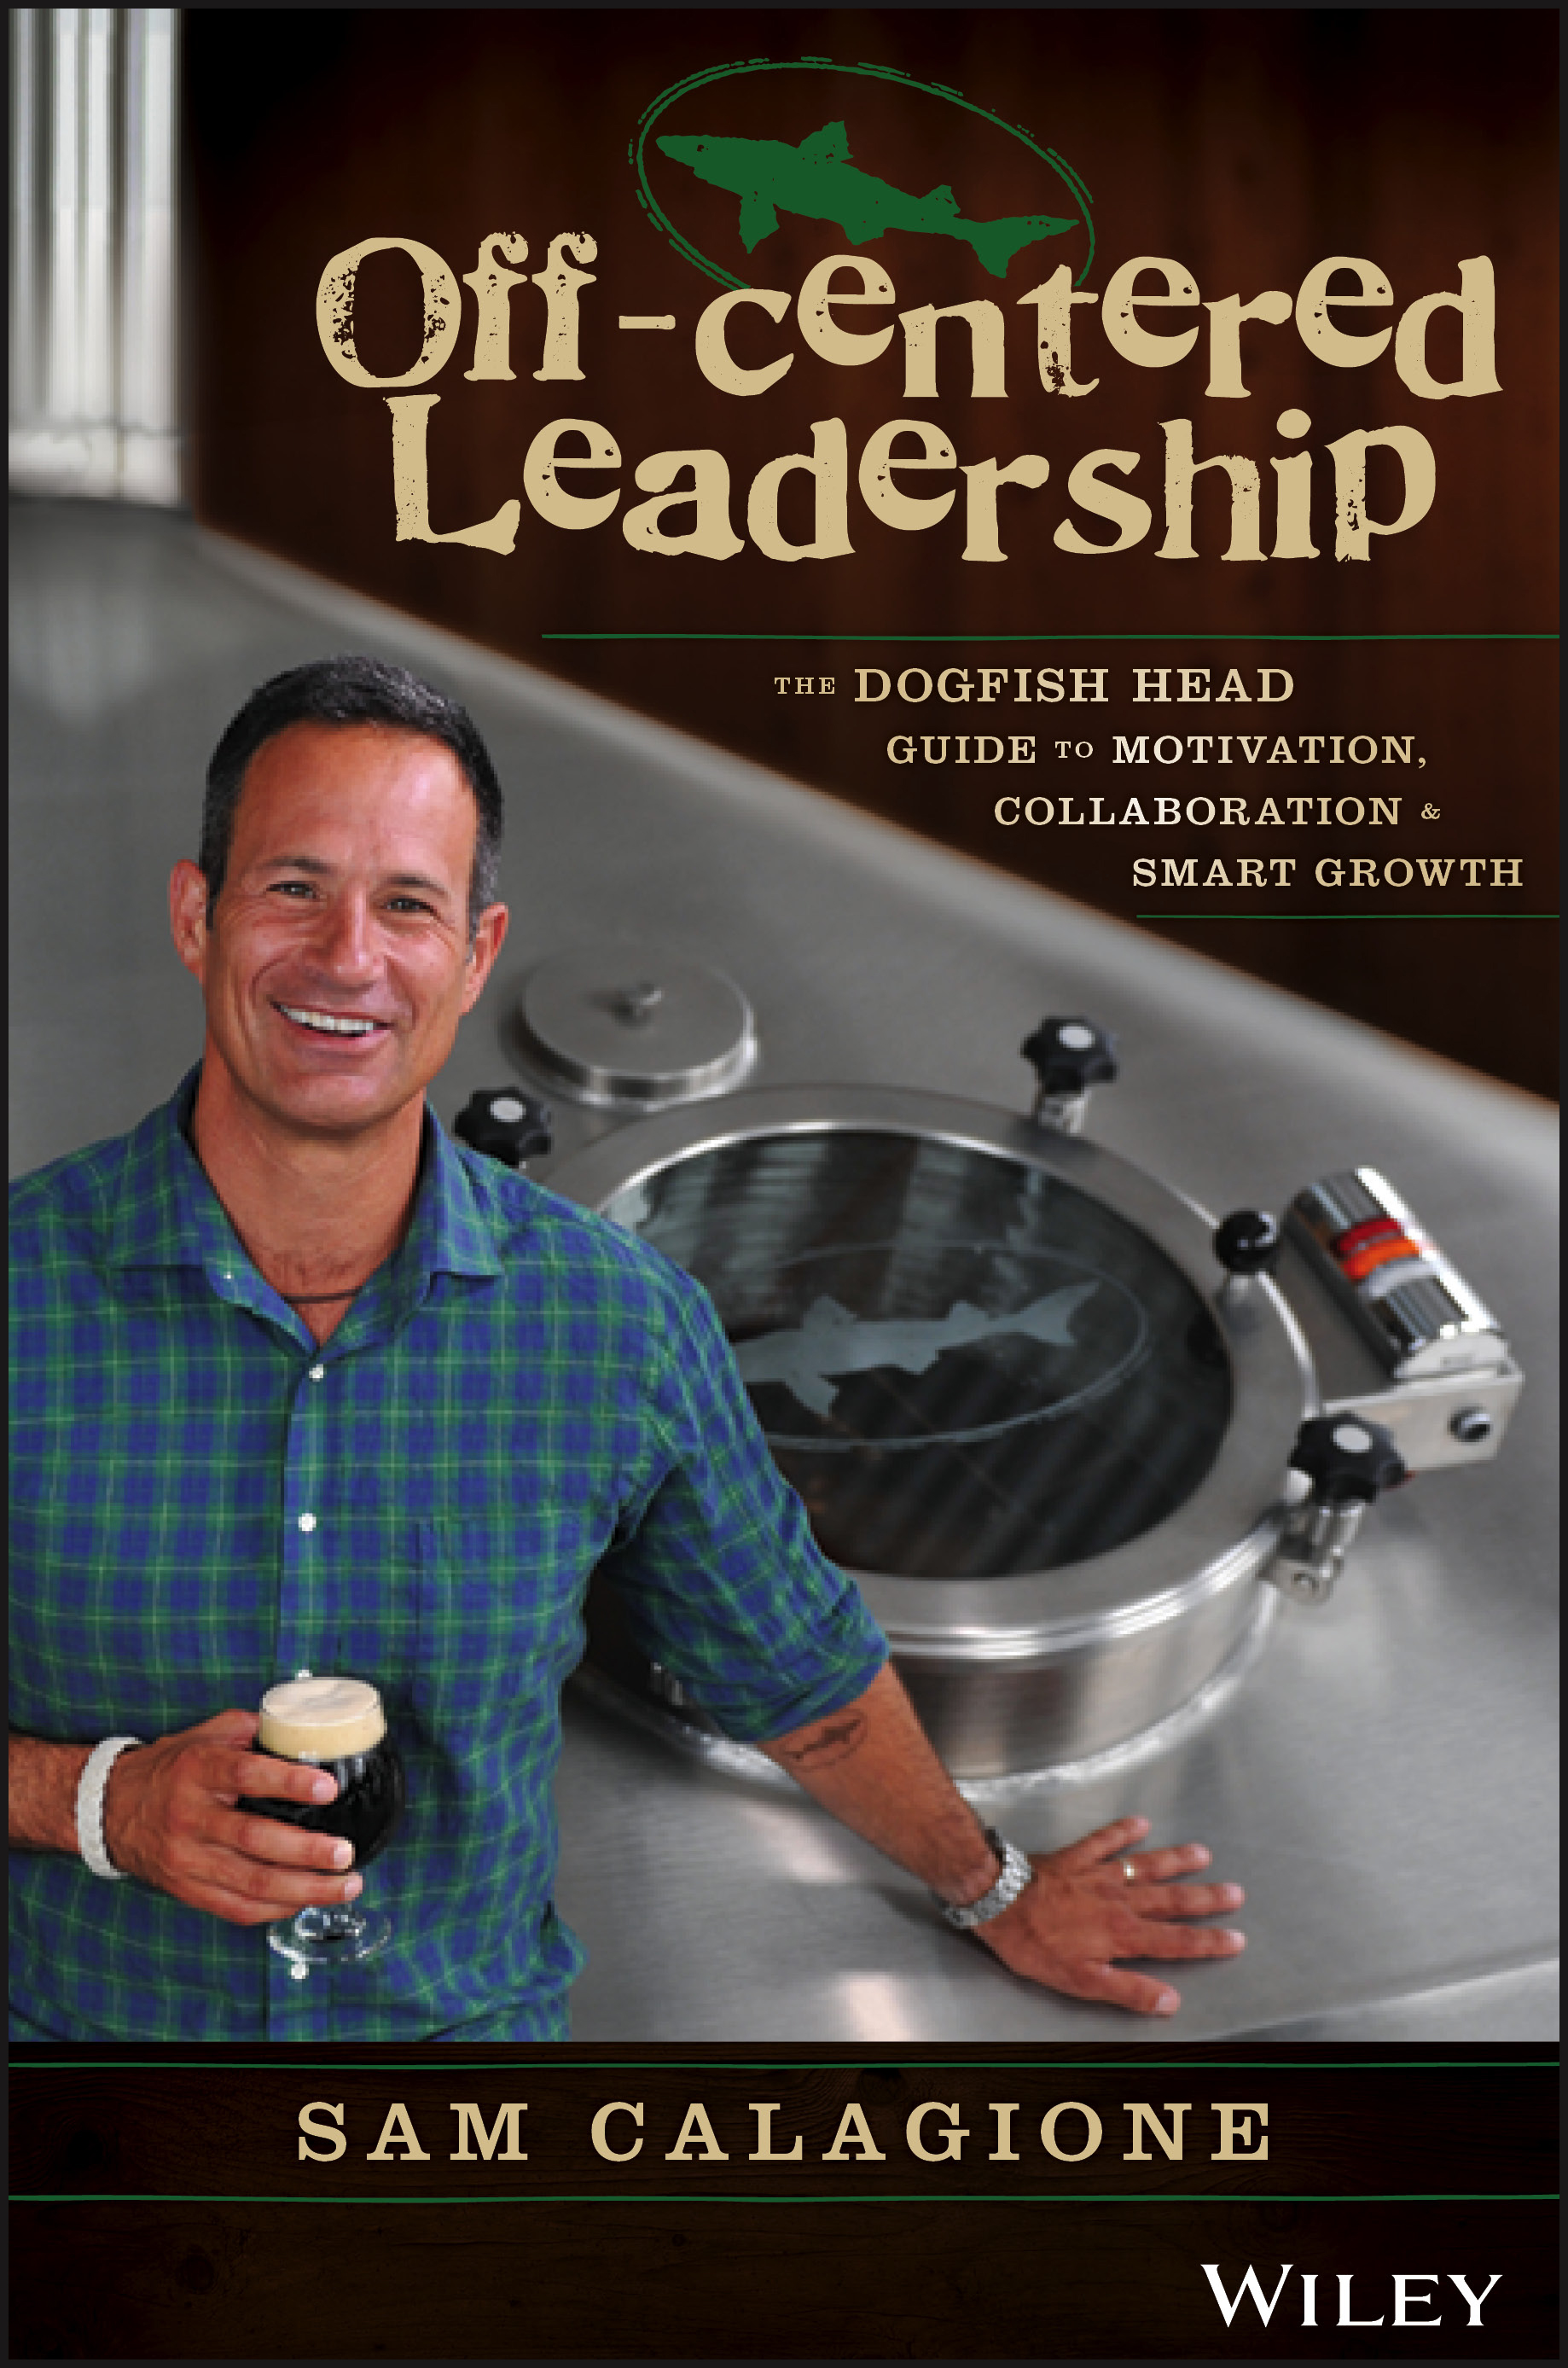 offcentered leadership cover